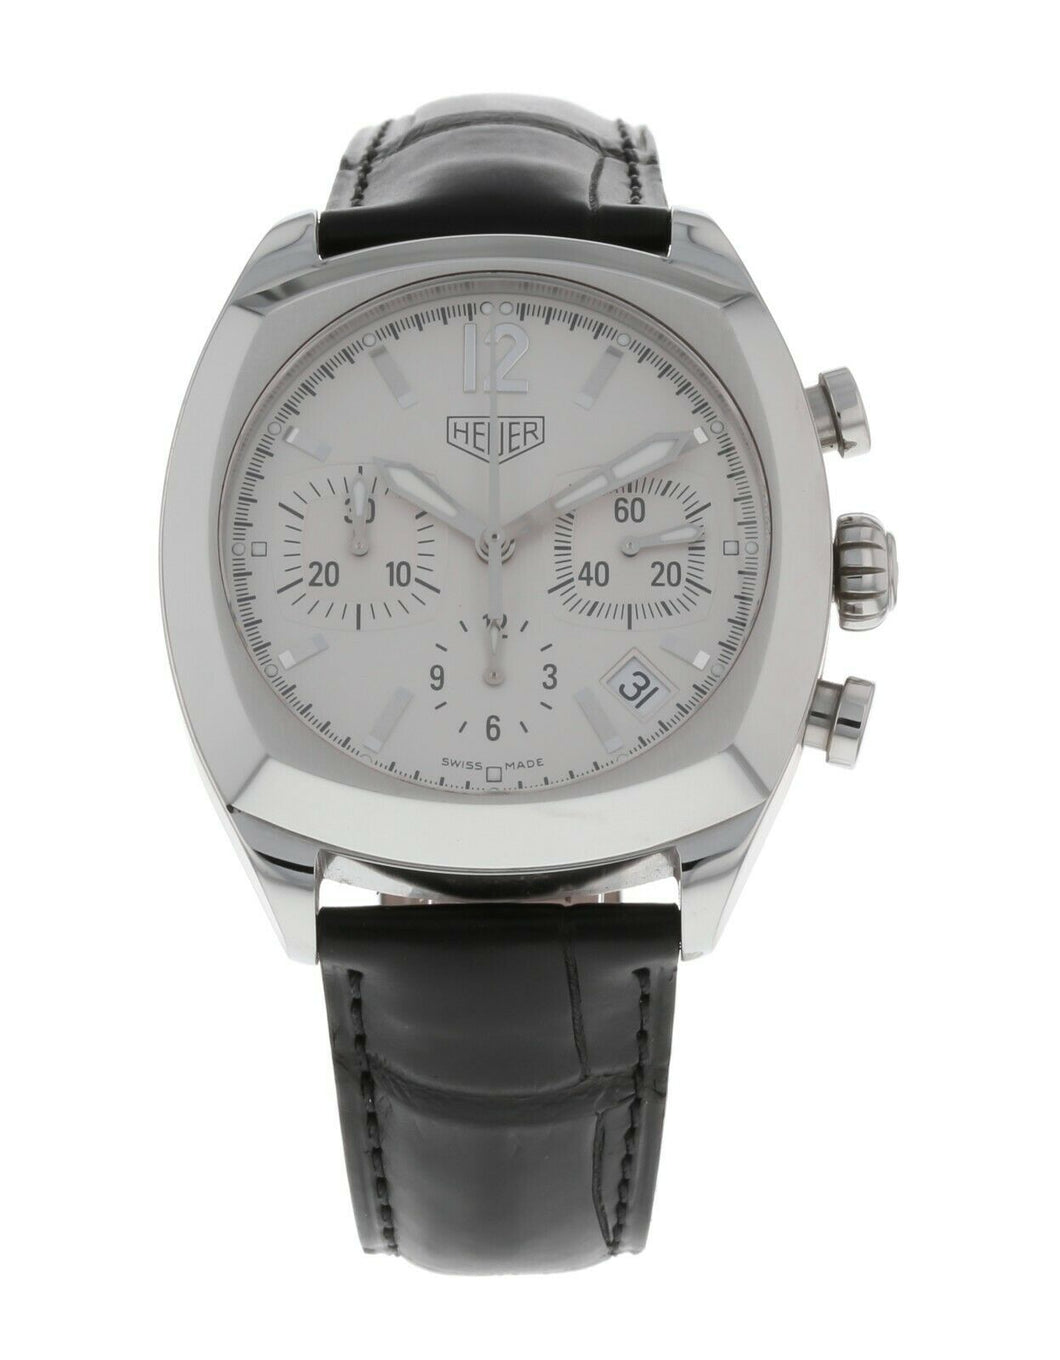 Tag Heuer Monza 38mm Automatic Chronograph Men's Watch CR2111.FC6161